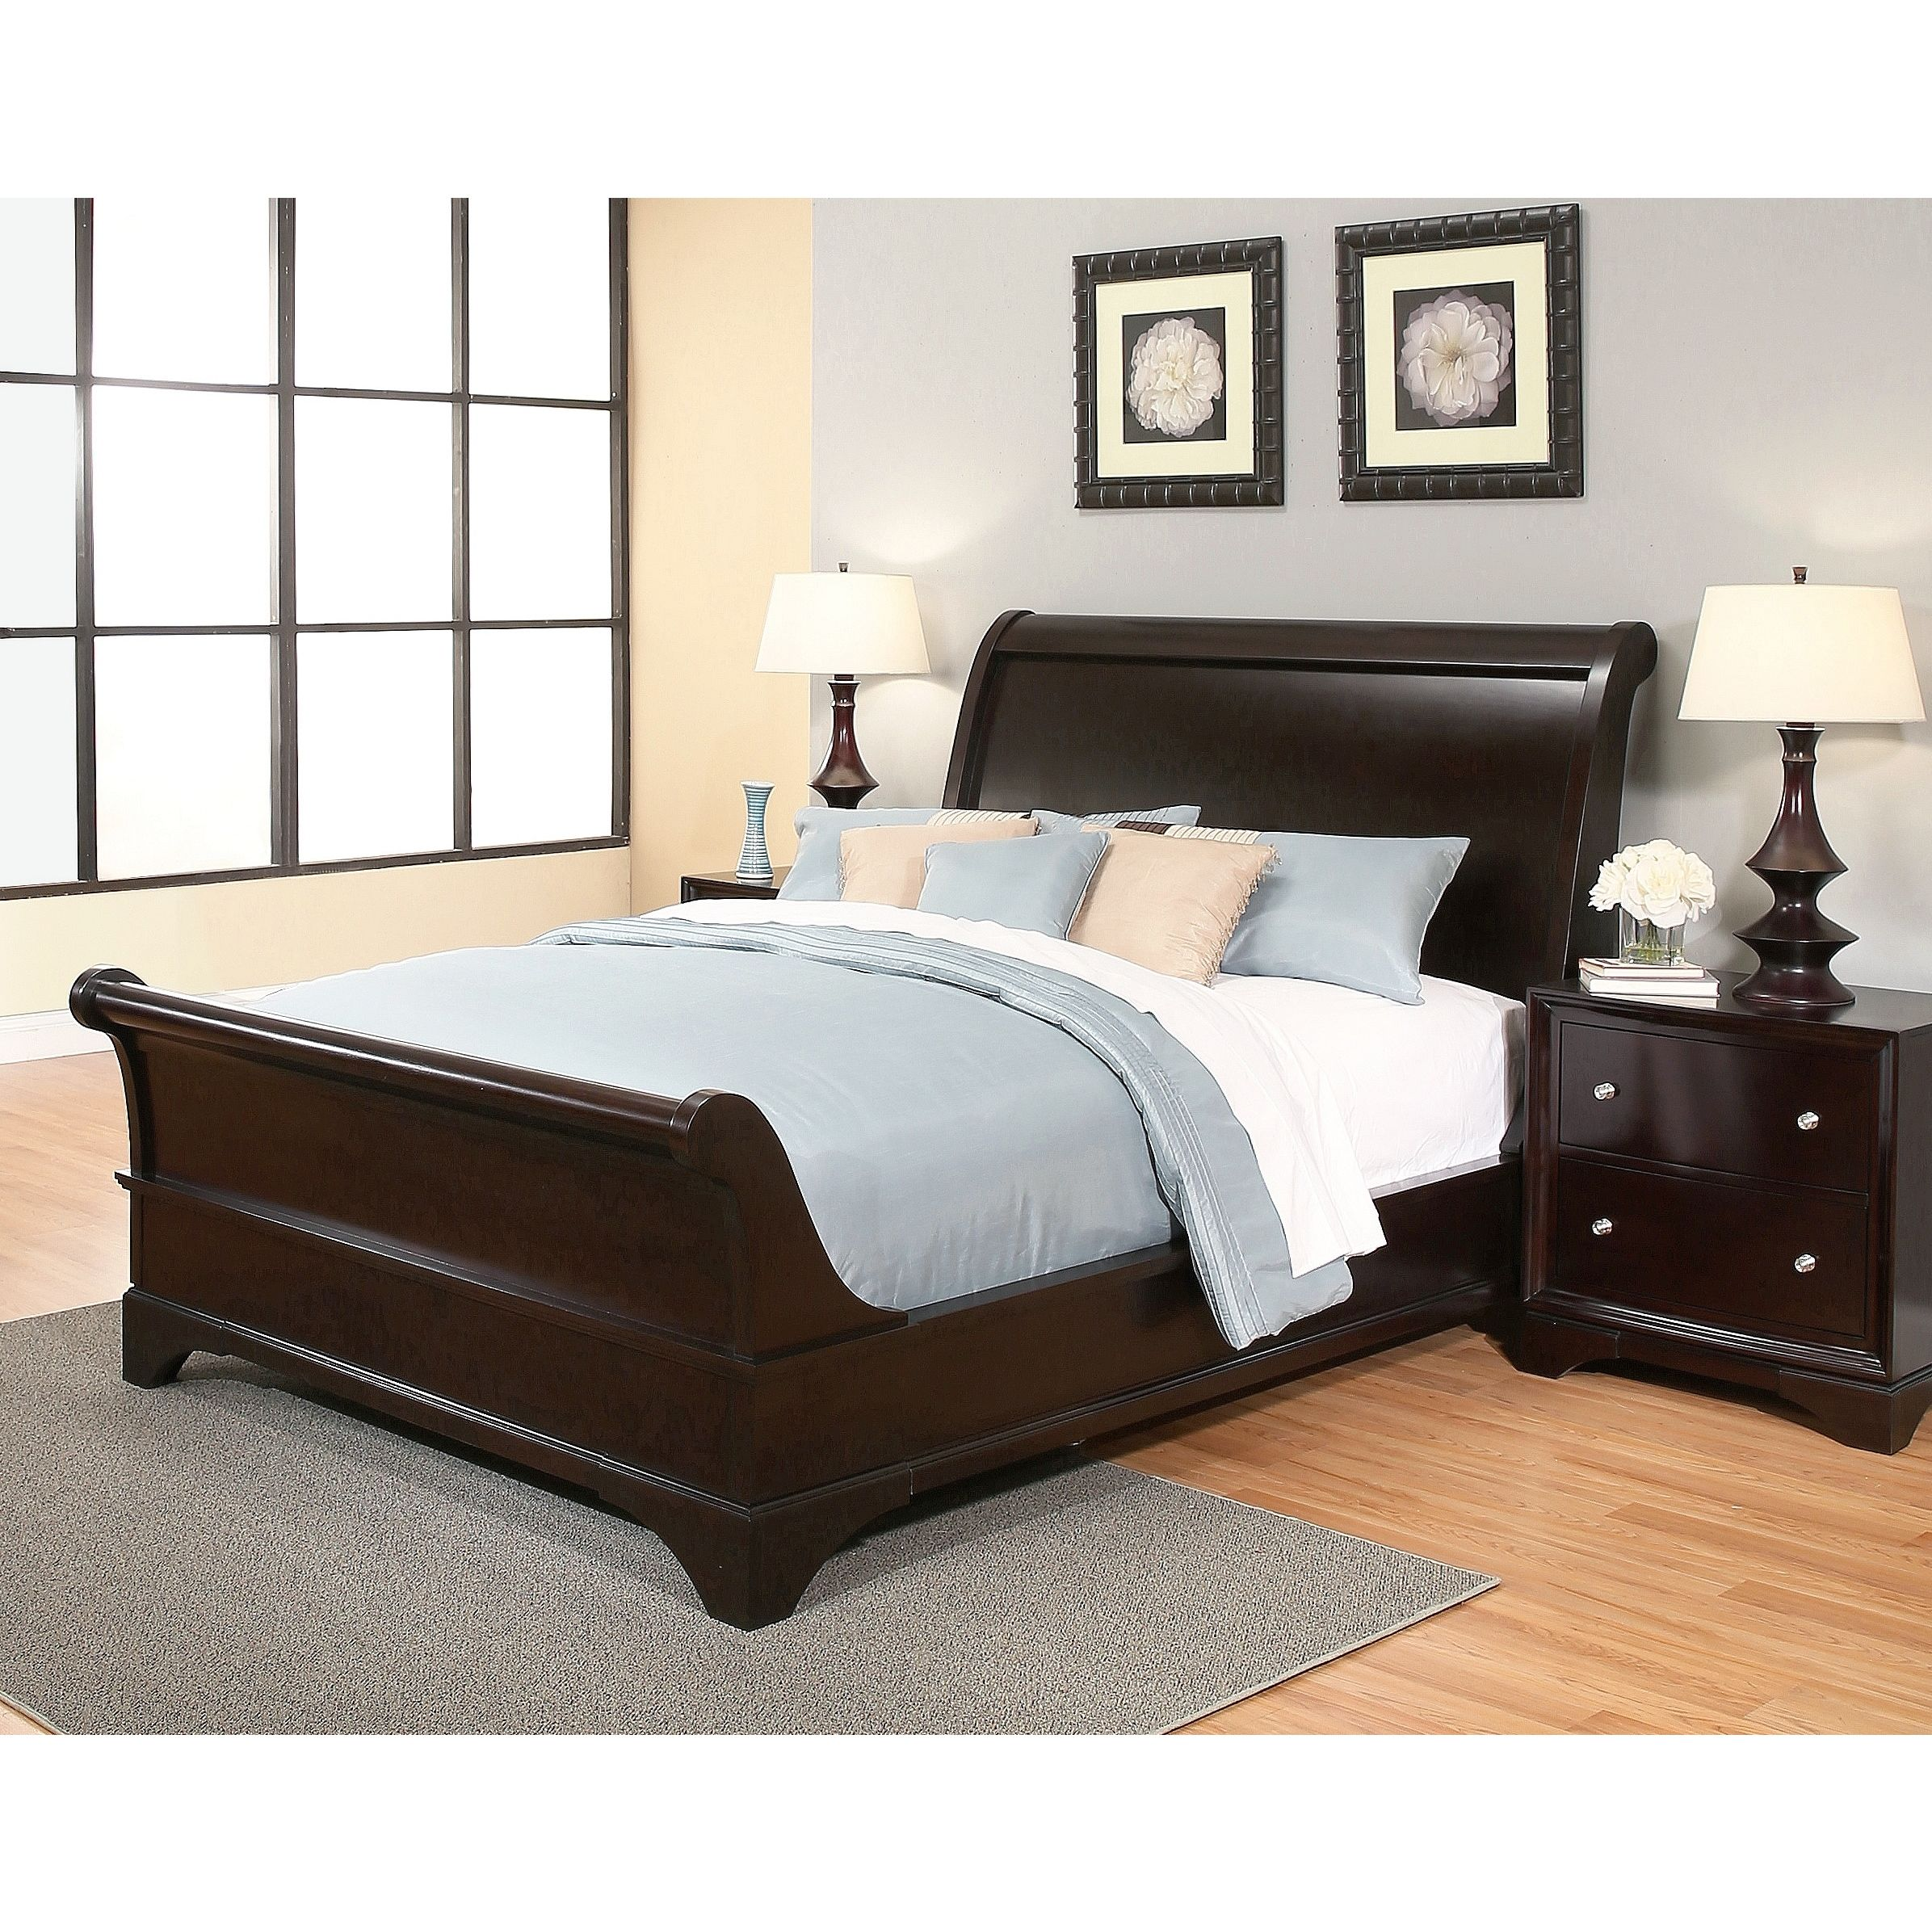 Abbyson Kingston Espresso Sleigh King Size Bed (Eastern King), Brown